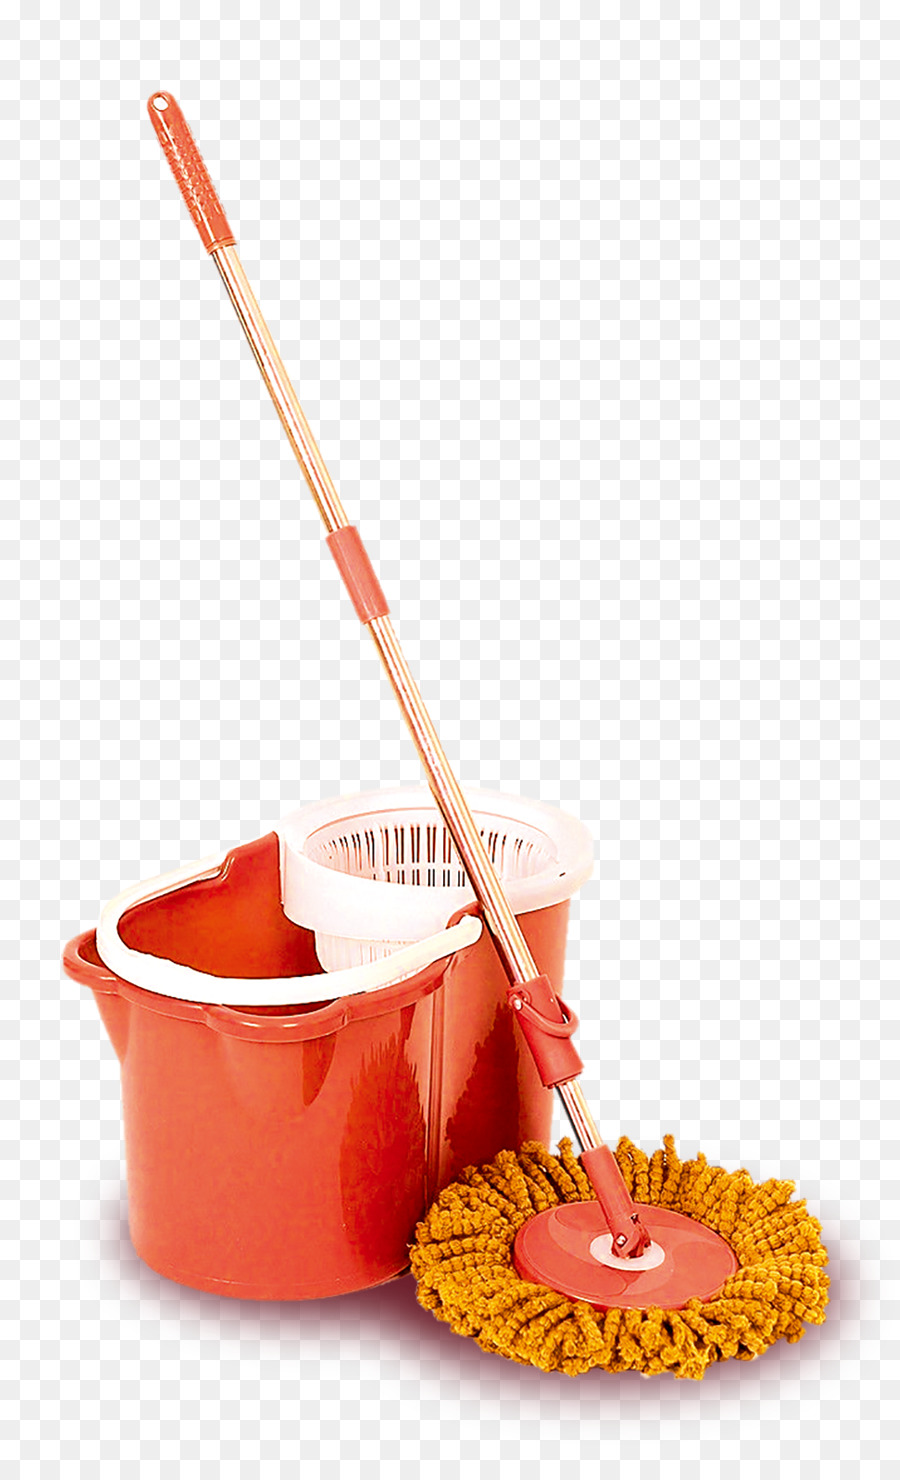 Mop Bucket Png - Window Household Cleaning Supply png download - 900*1480 - Free ...